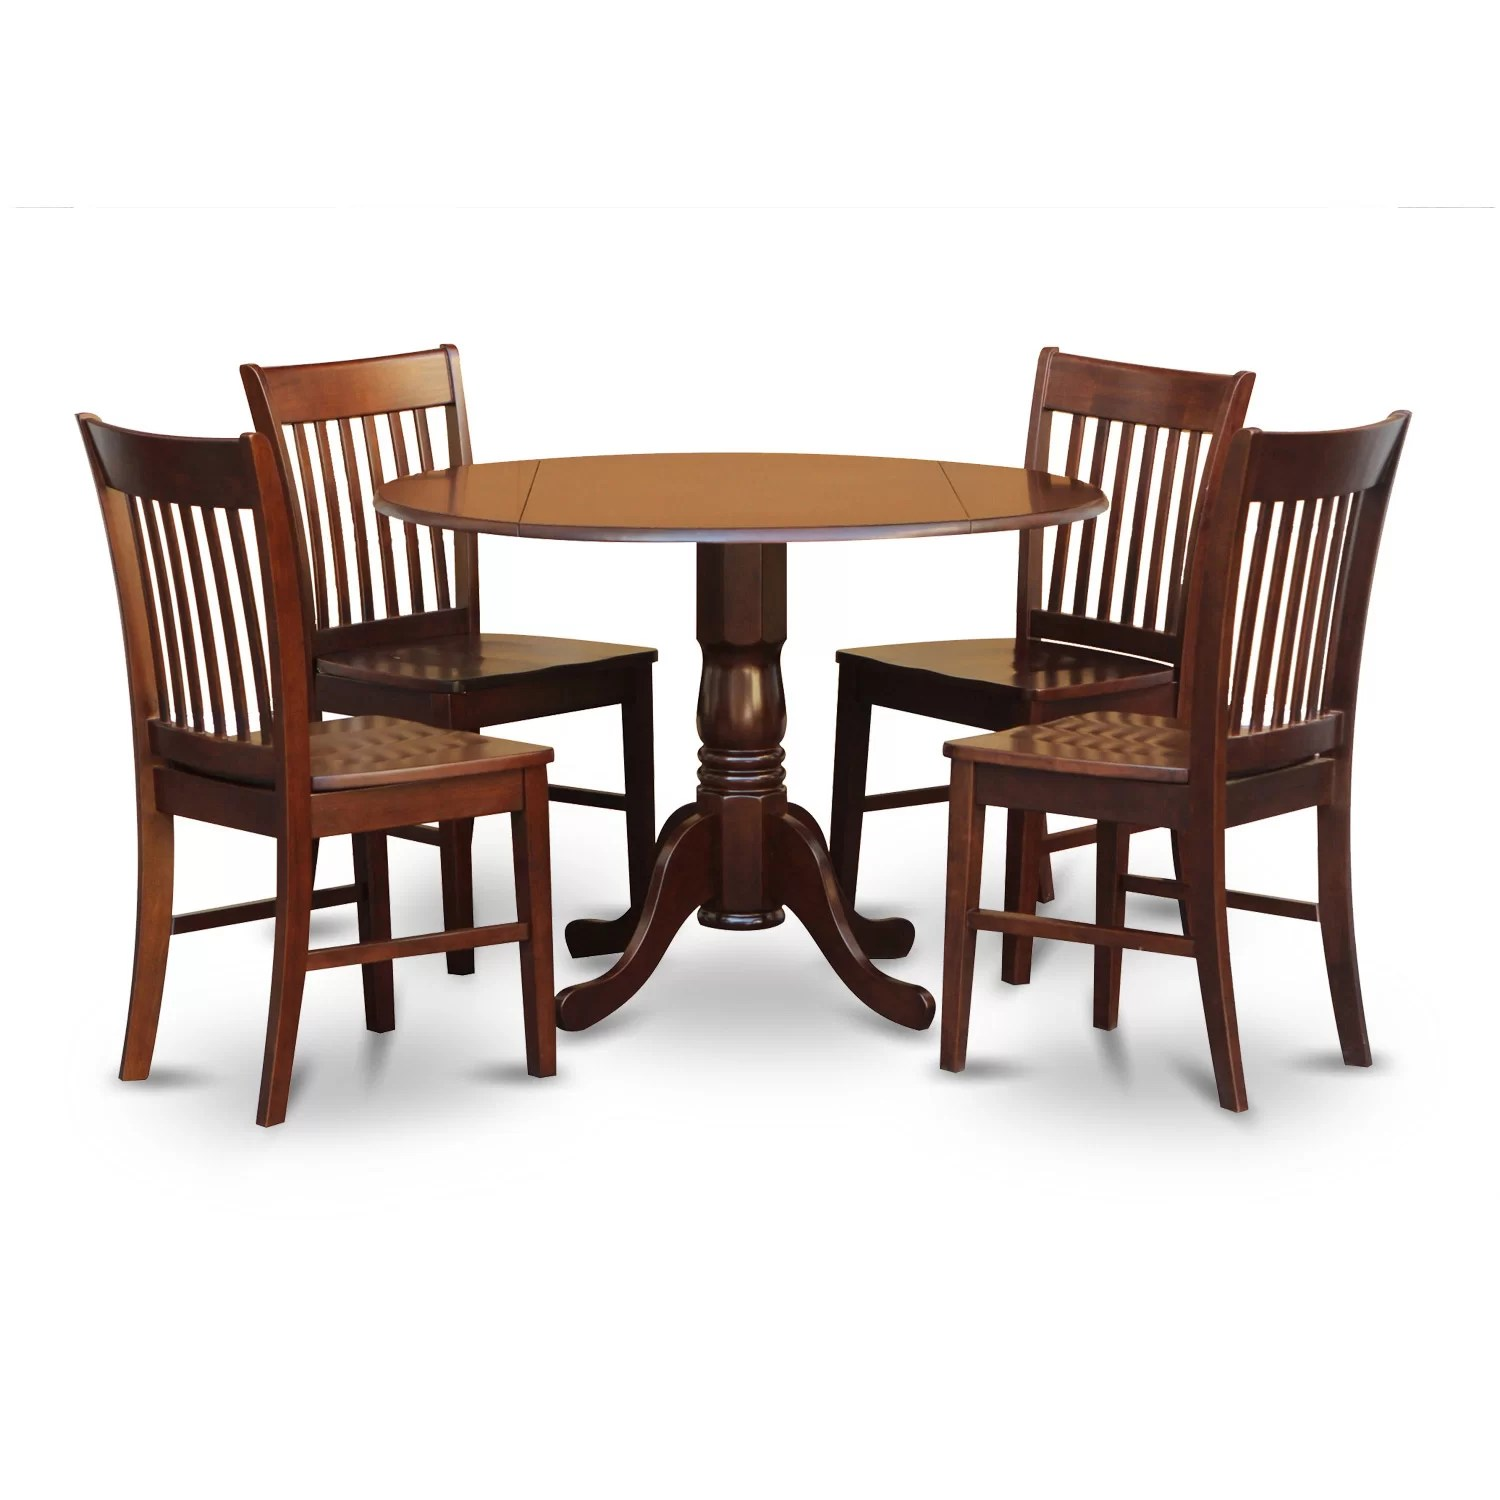 Small Round Table And Chairs East West Dublin 5 Piece Dining Set And Reviews Wayfair